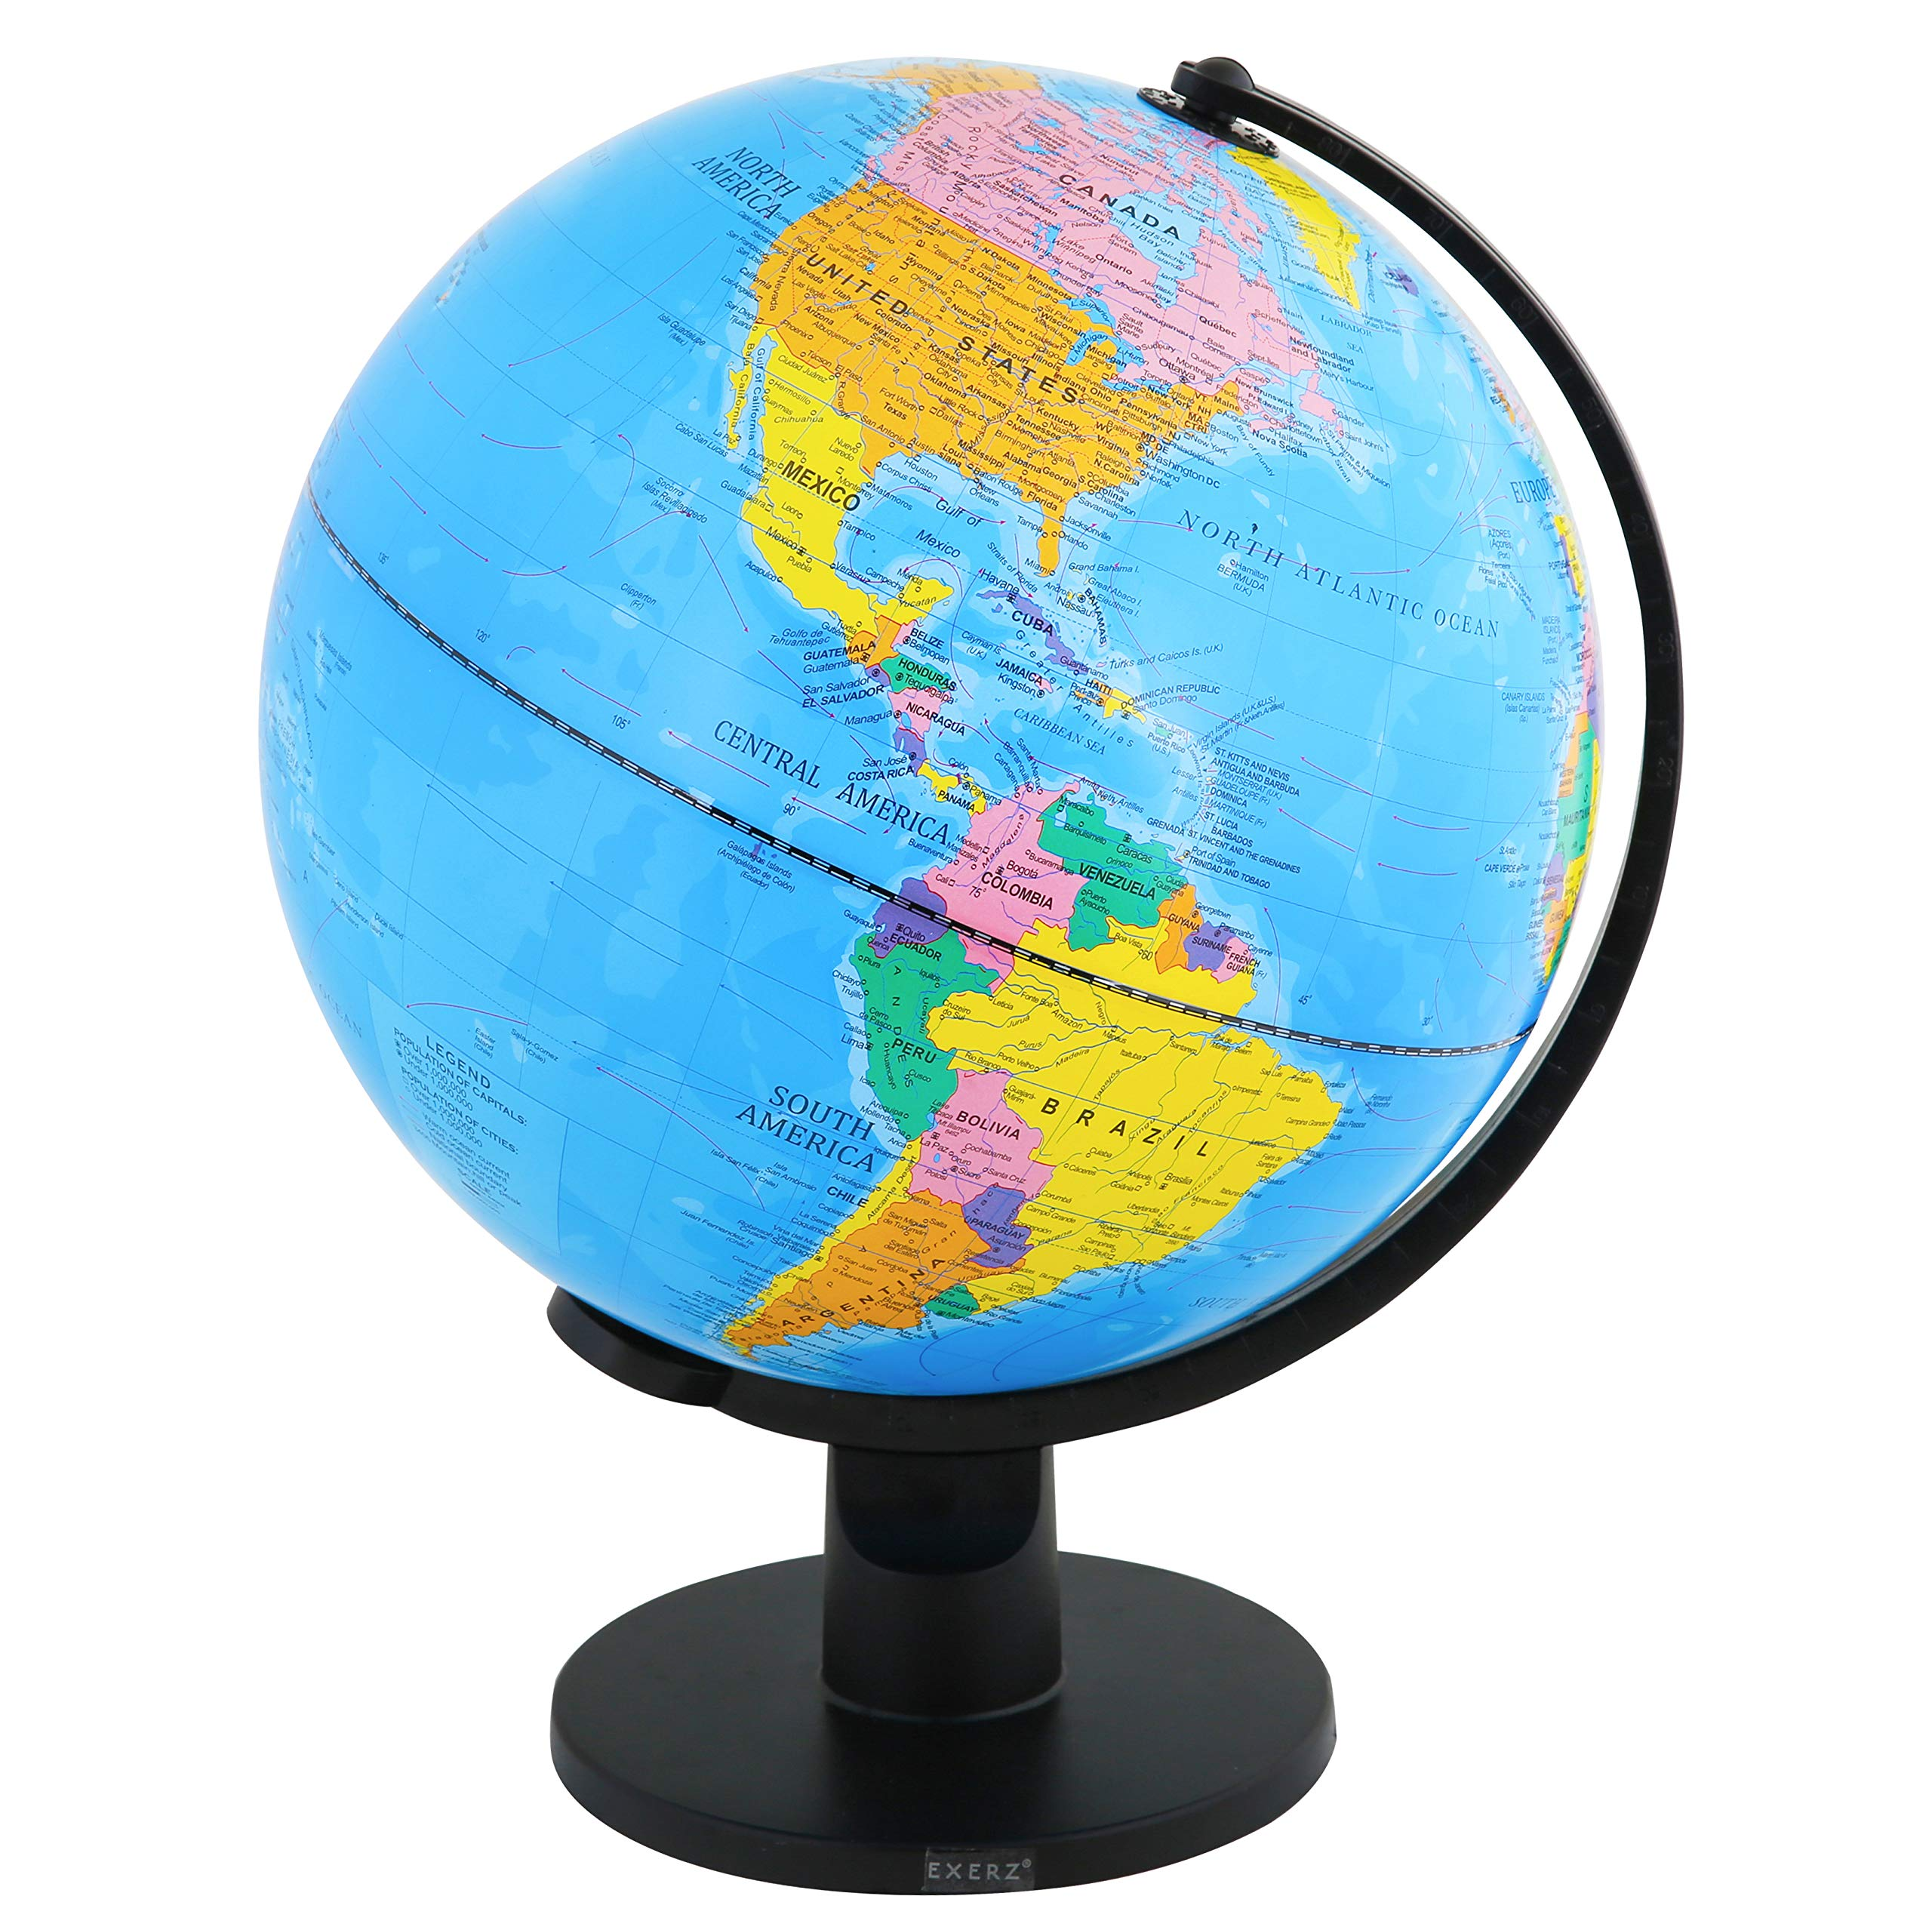 Exerz Classic Globe Educational Swivel (X-Large 12'' / 30cm Diameter) - Up-to-Date Political Desktop World Globe with Stand - Blue Ocean Black Base Full Earth Geography - for Kids and Adults by Exerz